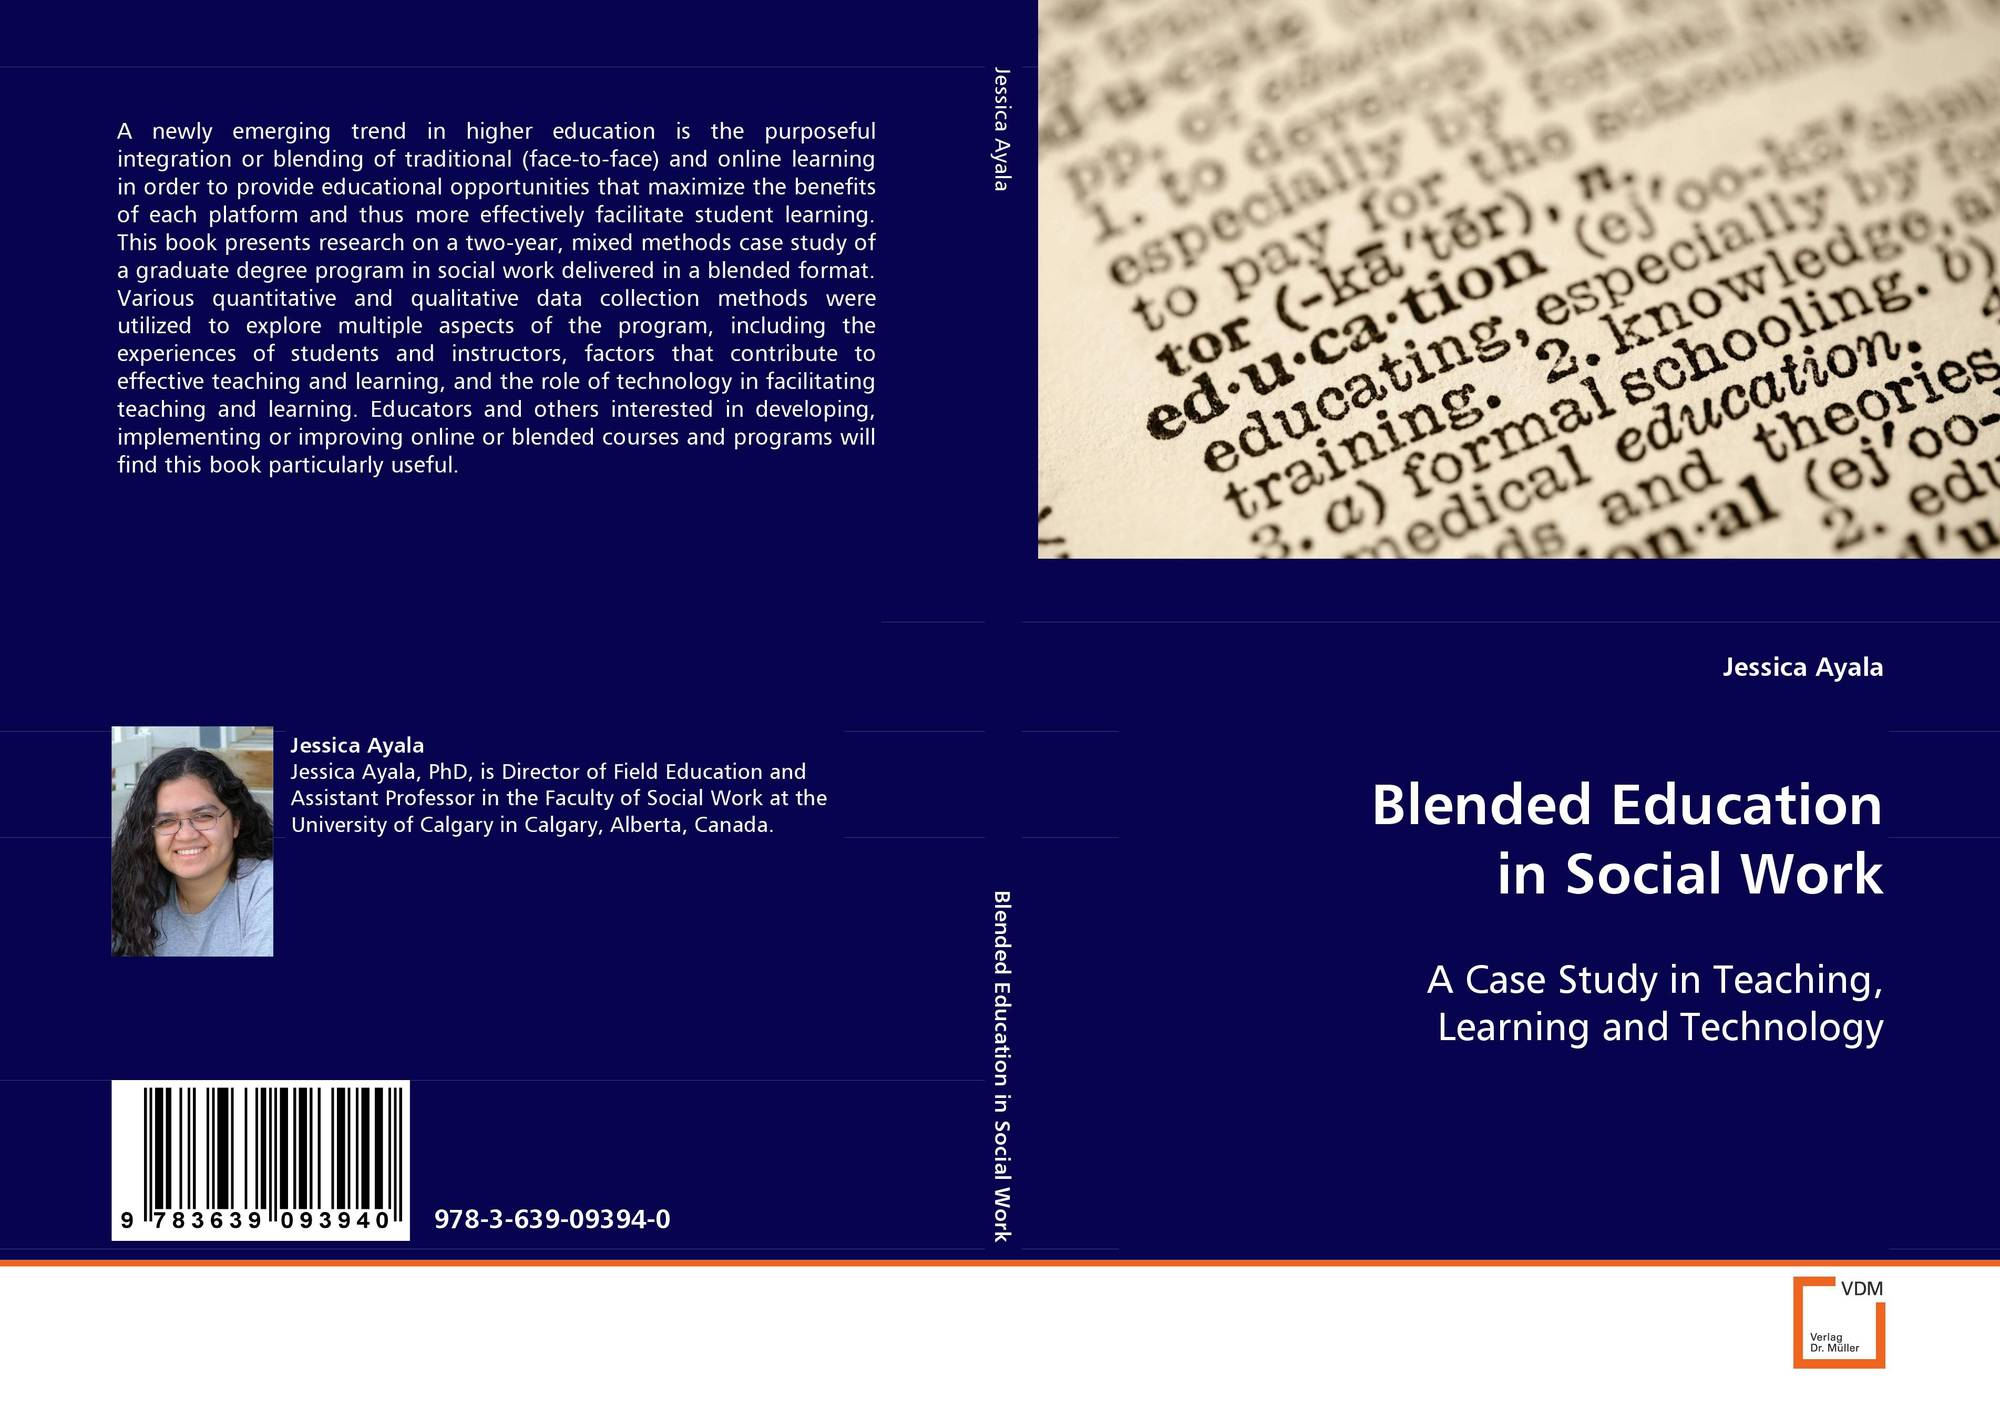 social work case studies foundation year Socw-6101-wk9-discussion1 report issue iscussion 1: treatment evaluation many social work students dread taking social work case studies: foundation year.